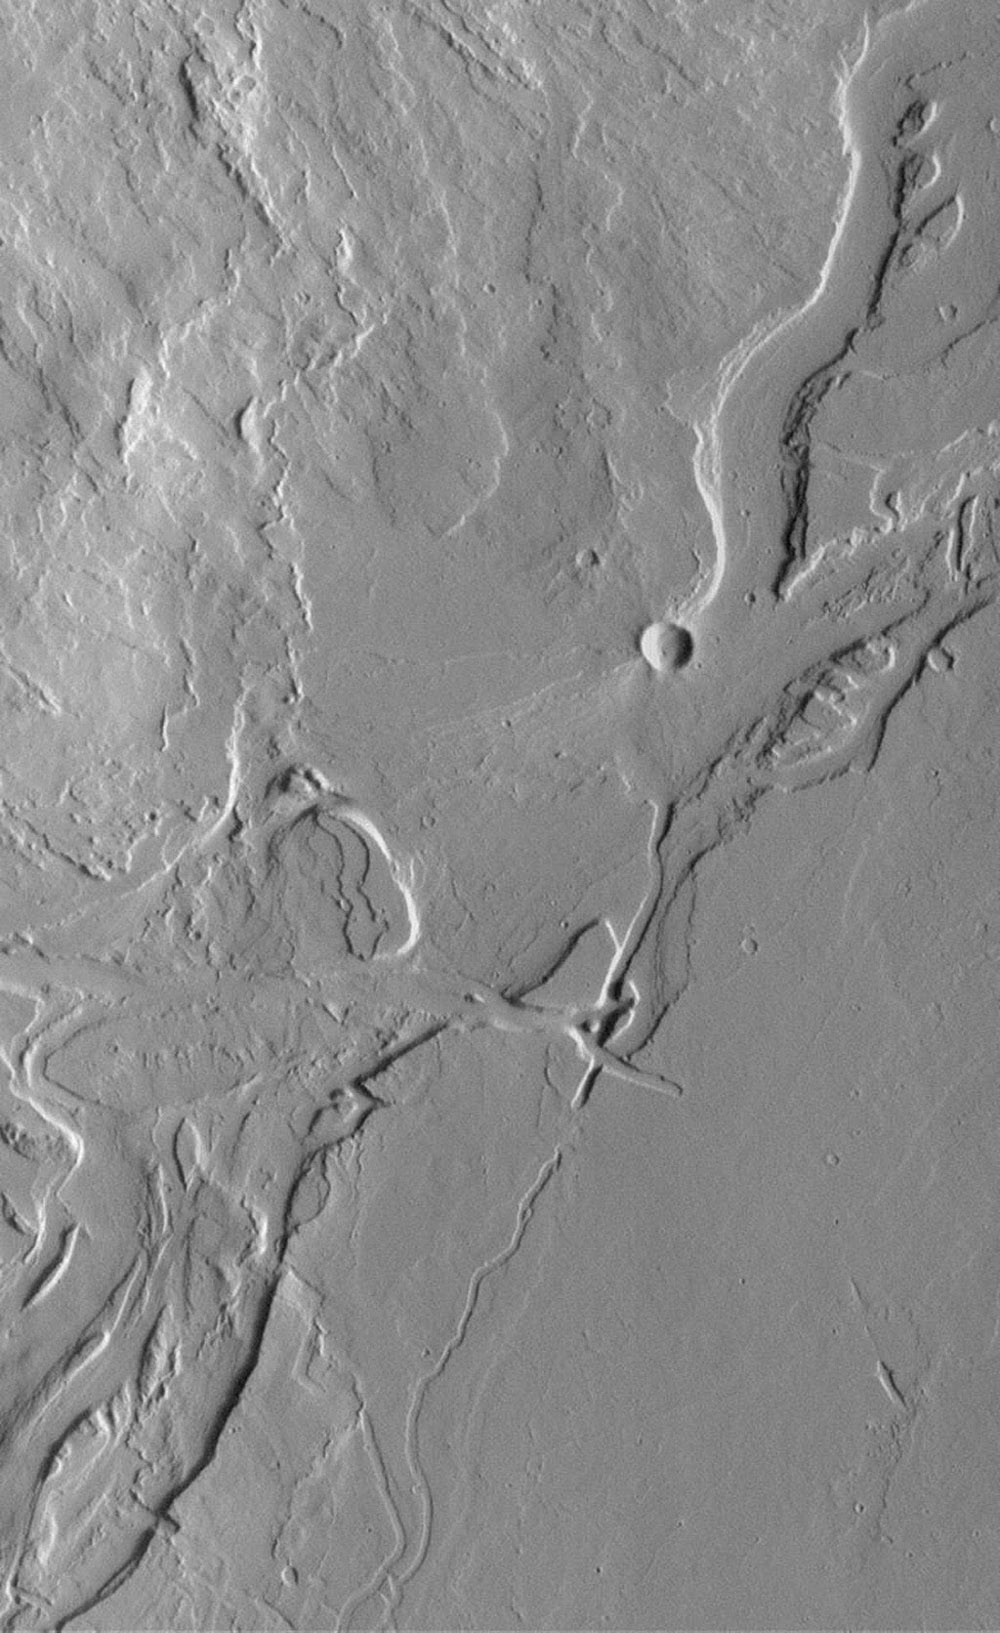 NASA's Mars Global Surveyor shows the volcanic Tharsis region, including these valleys and associated lava flows on the plains southeast of Olympus Mons. Lava flows are visible, but meandering valleys with streamlined 'islands' dominate the scene.